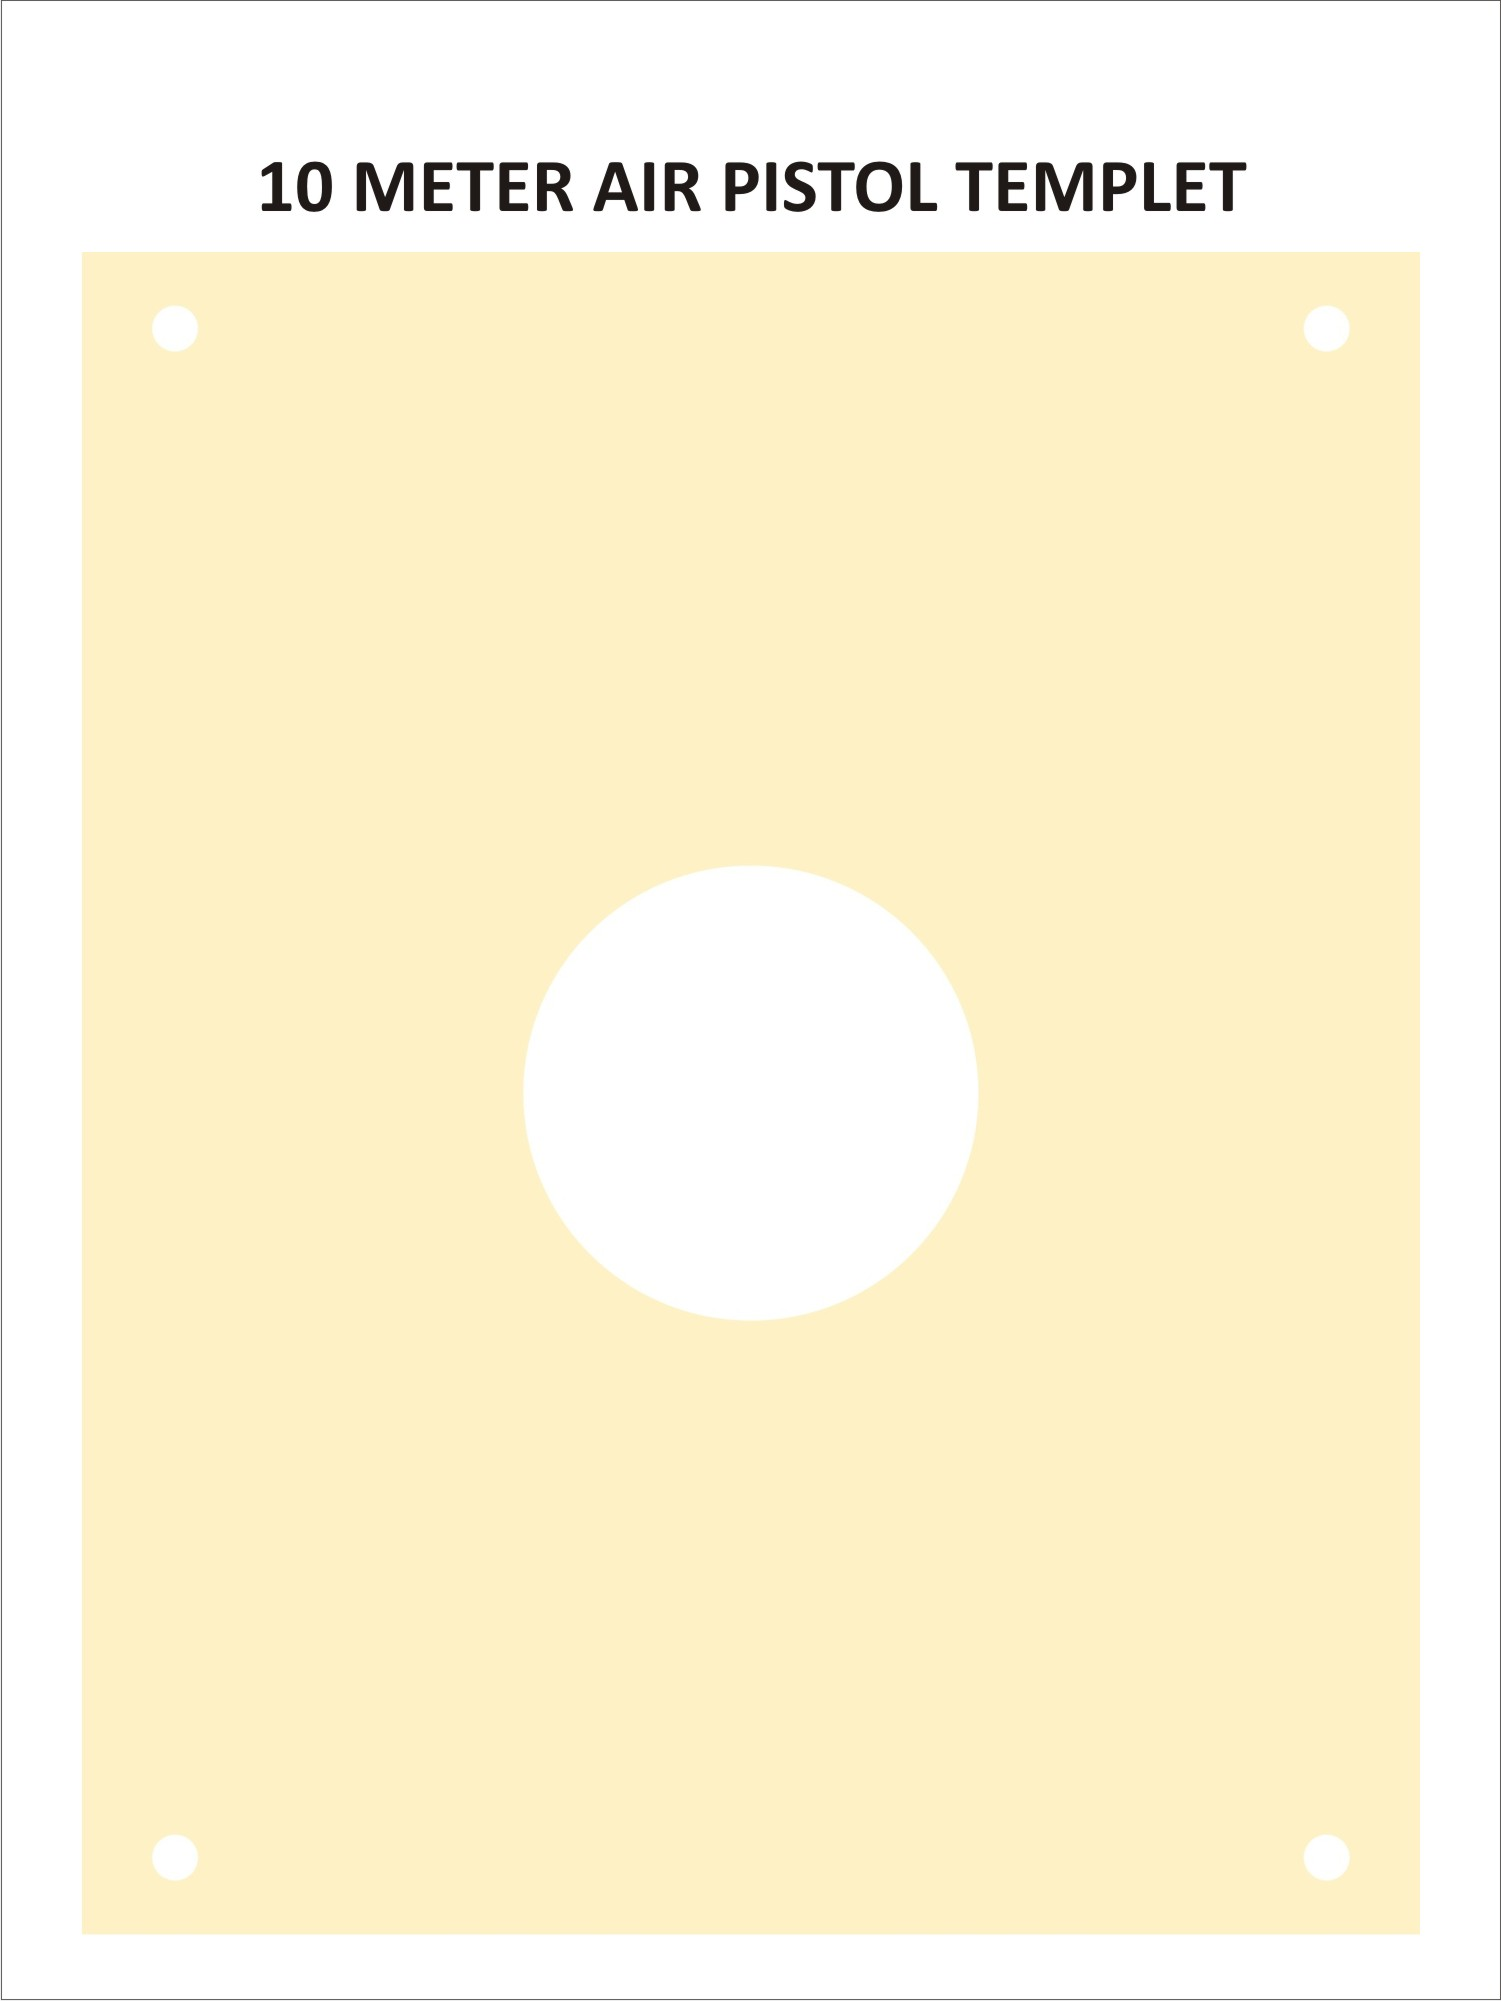 Air Pistol Template ( 10 Metres)